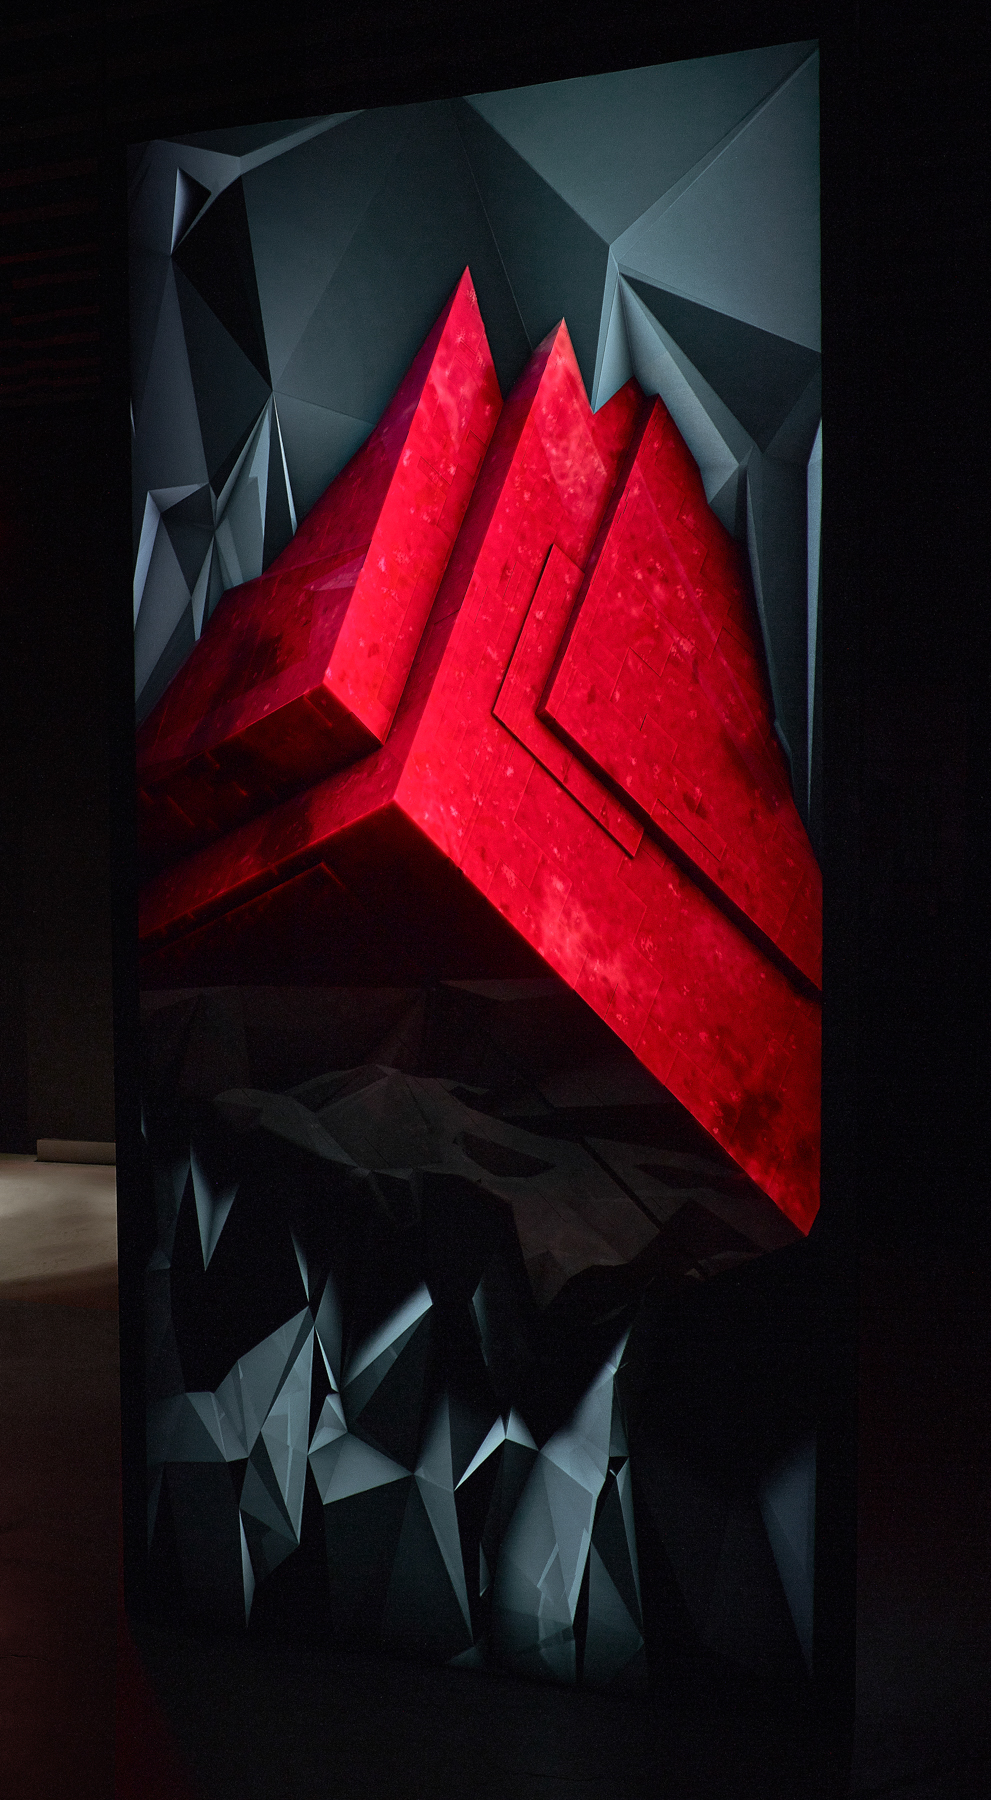 Cavity New York RH Contemporary projection projection mapping vvvv processing cinema4d augmented augmented sculpture print c-print generative geode